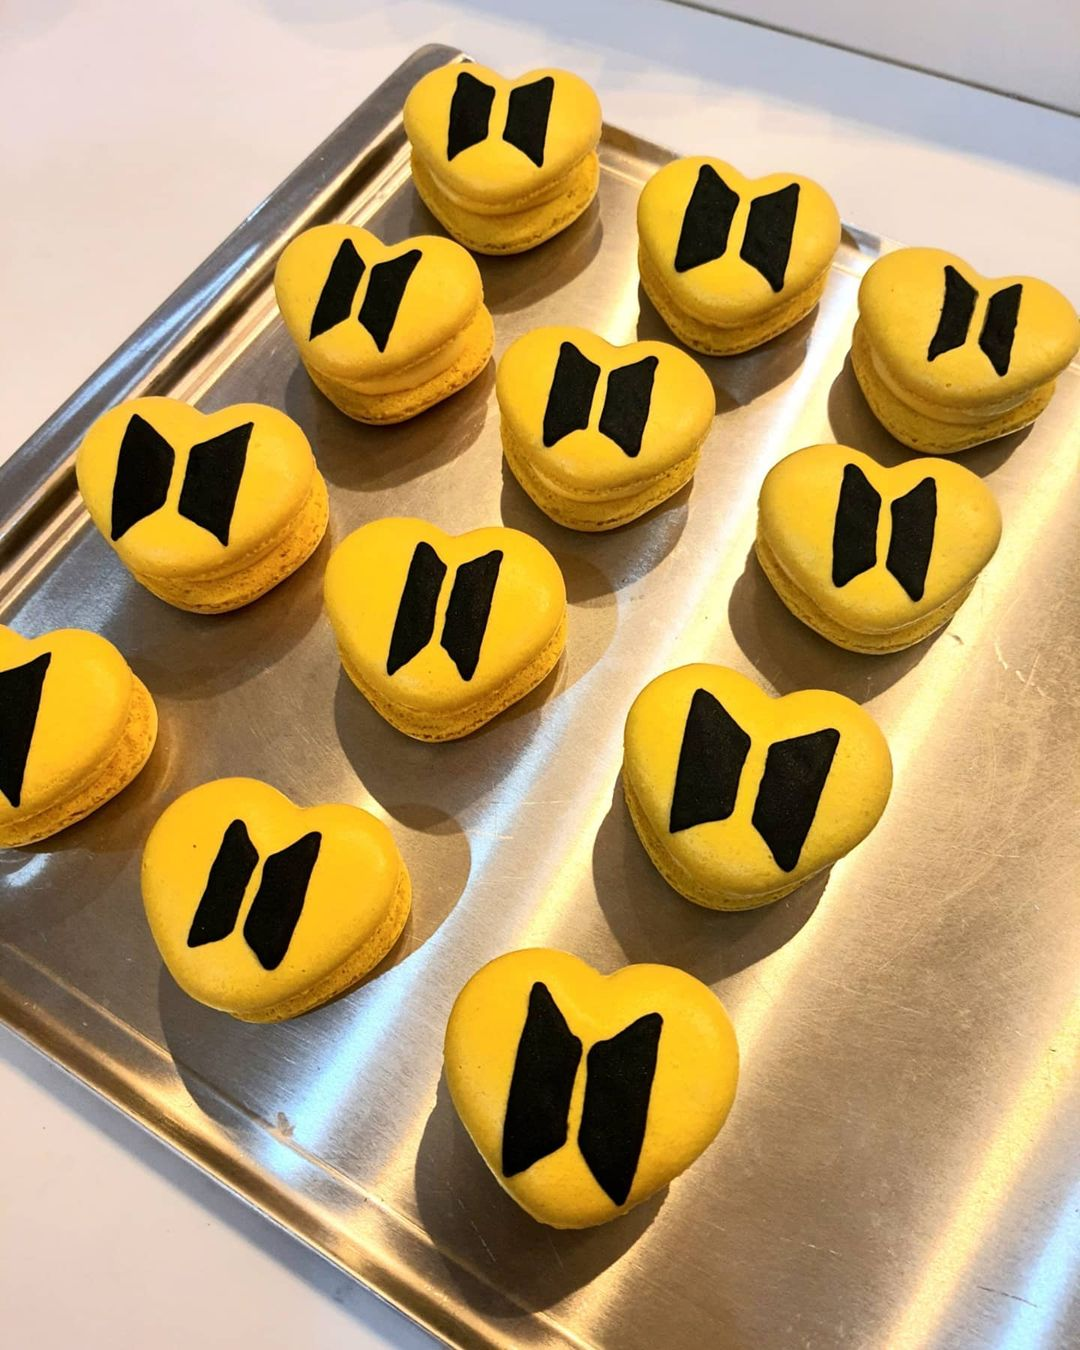 Where to buy BTS-inspired macarons - Butter